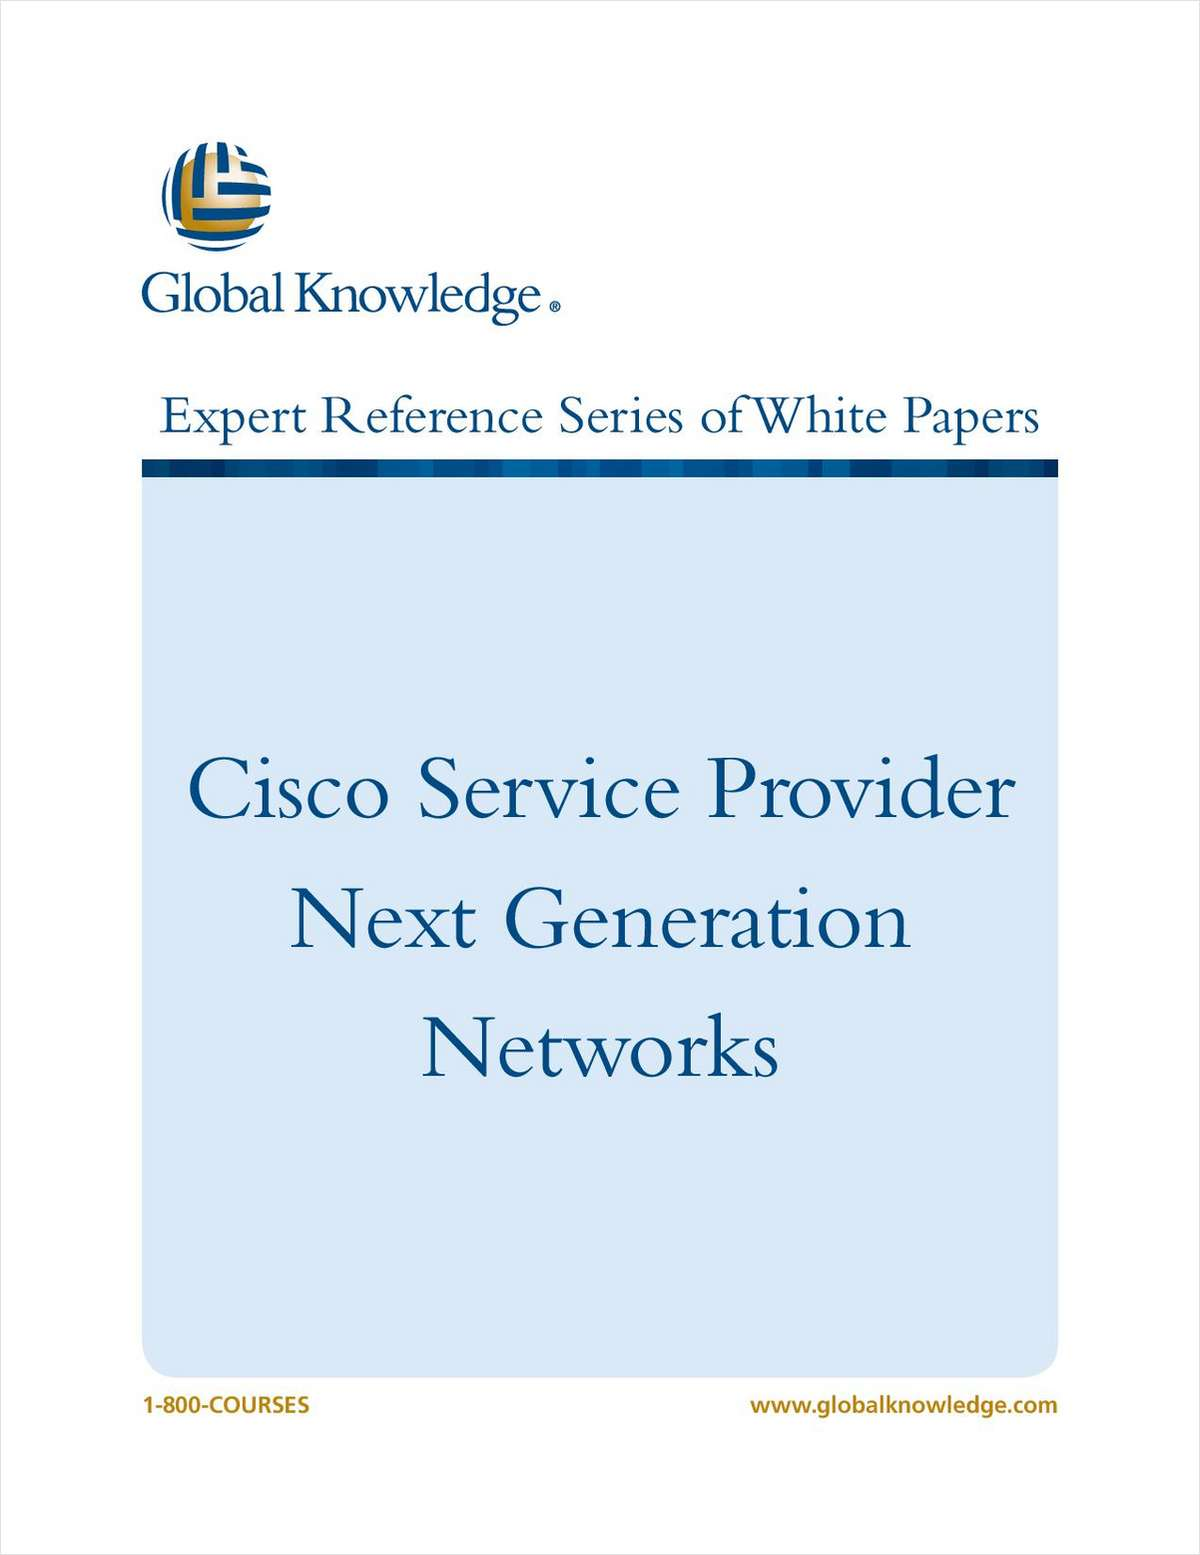 Cisco Service Provider Next Generation Networks